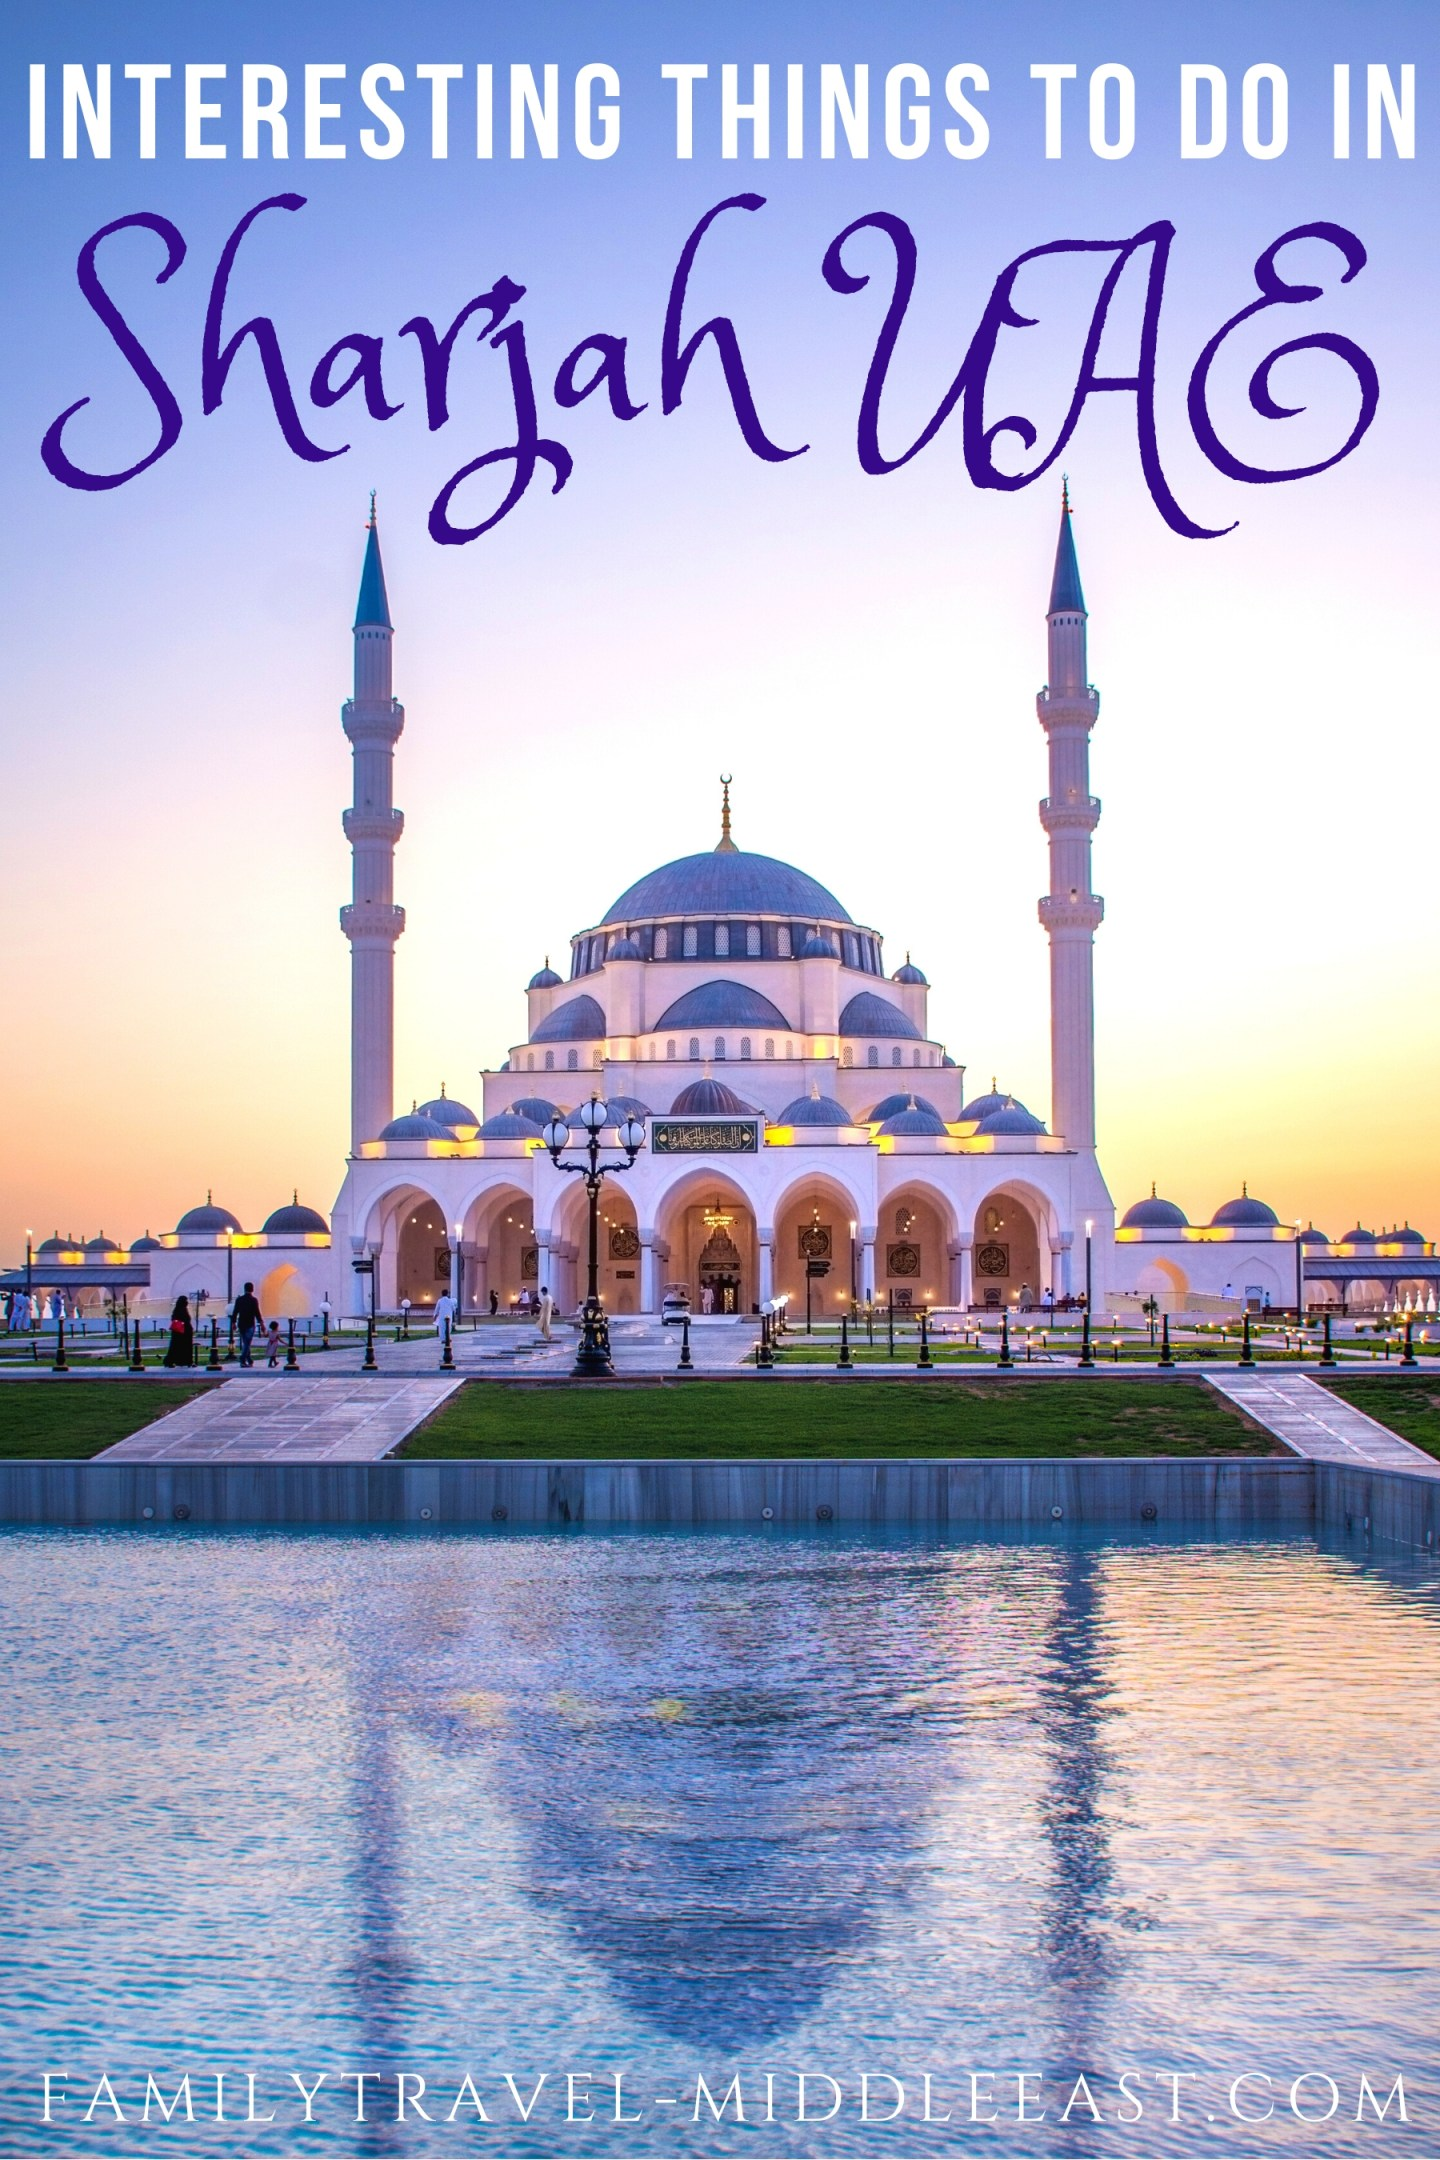 Sharjah Mosque - intereting things to do when visiting Sharjah | A family friendly guide to exploring Sharjah's highlights